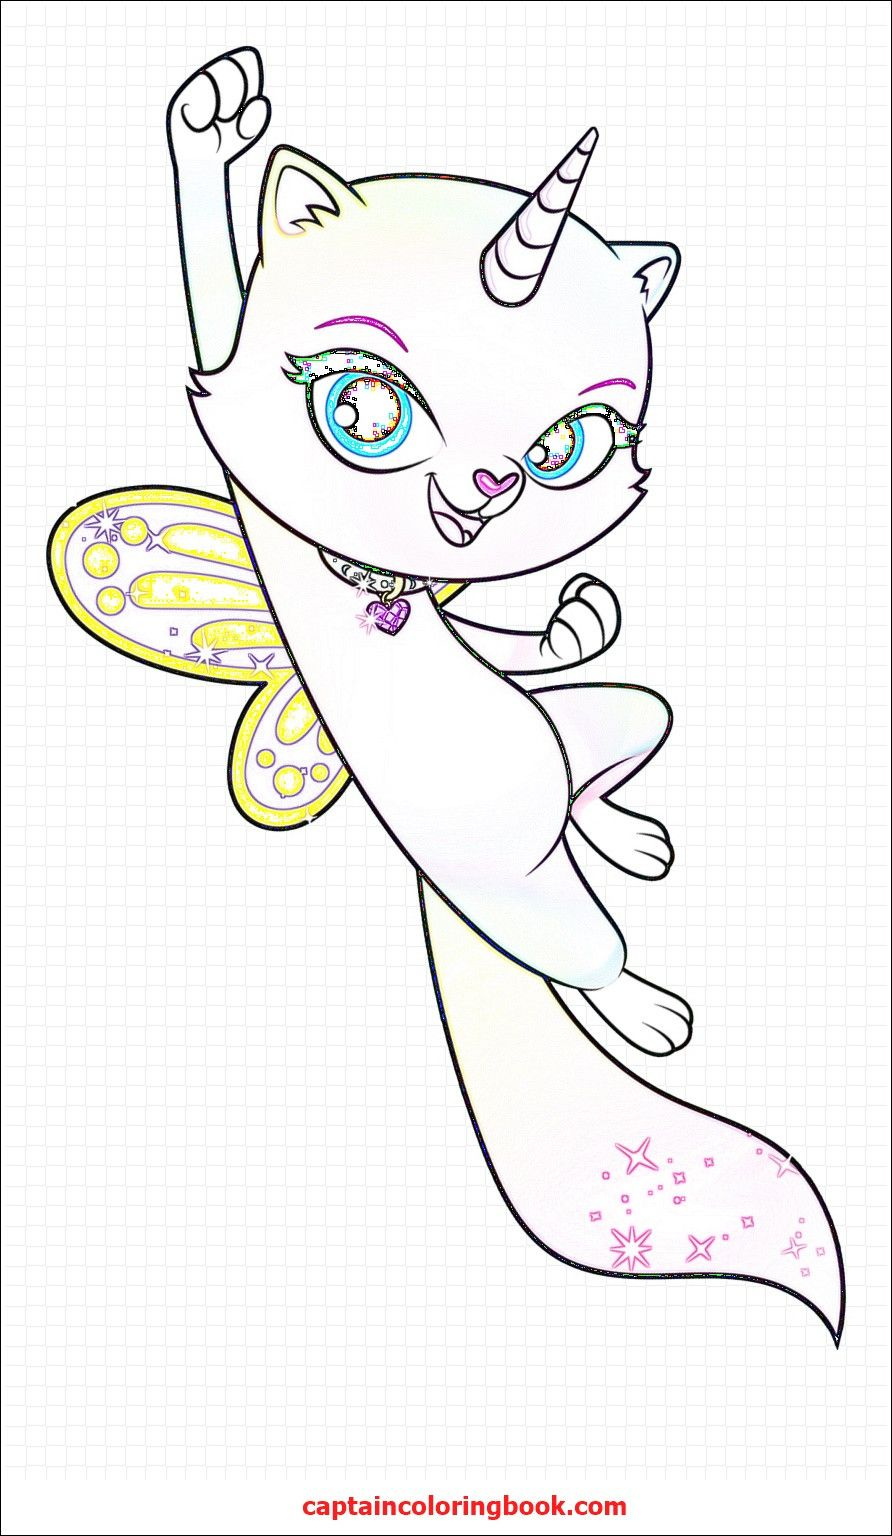 Unicorn Kitty Coloring Page Youngandtae Com Kitty Coloring Hello Kitty Colouring Pages Unicorn Coloring Pages